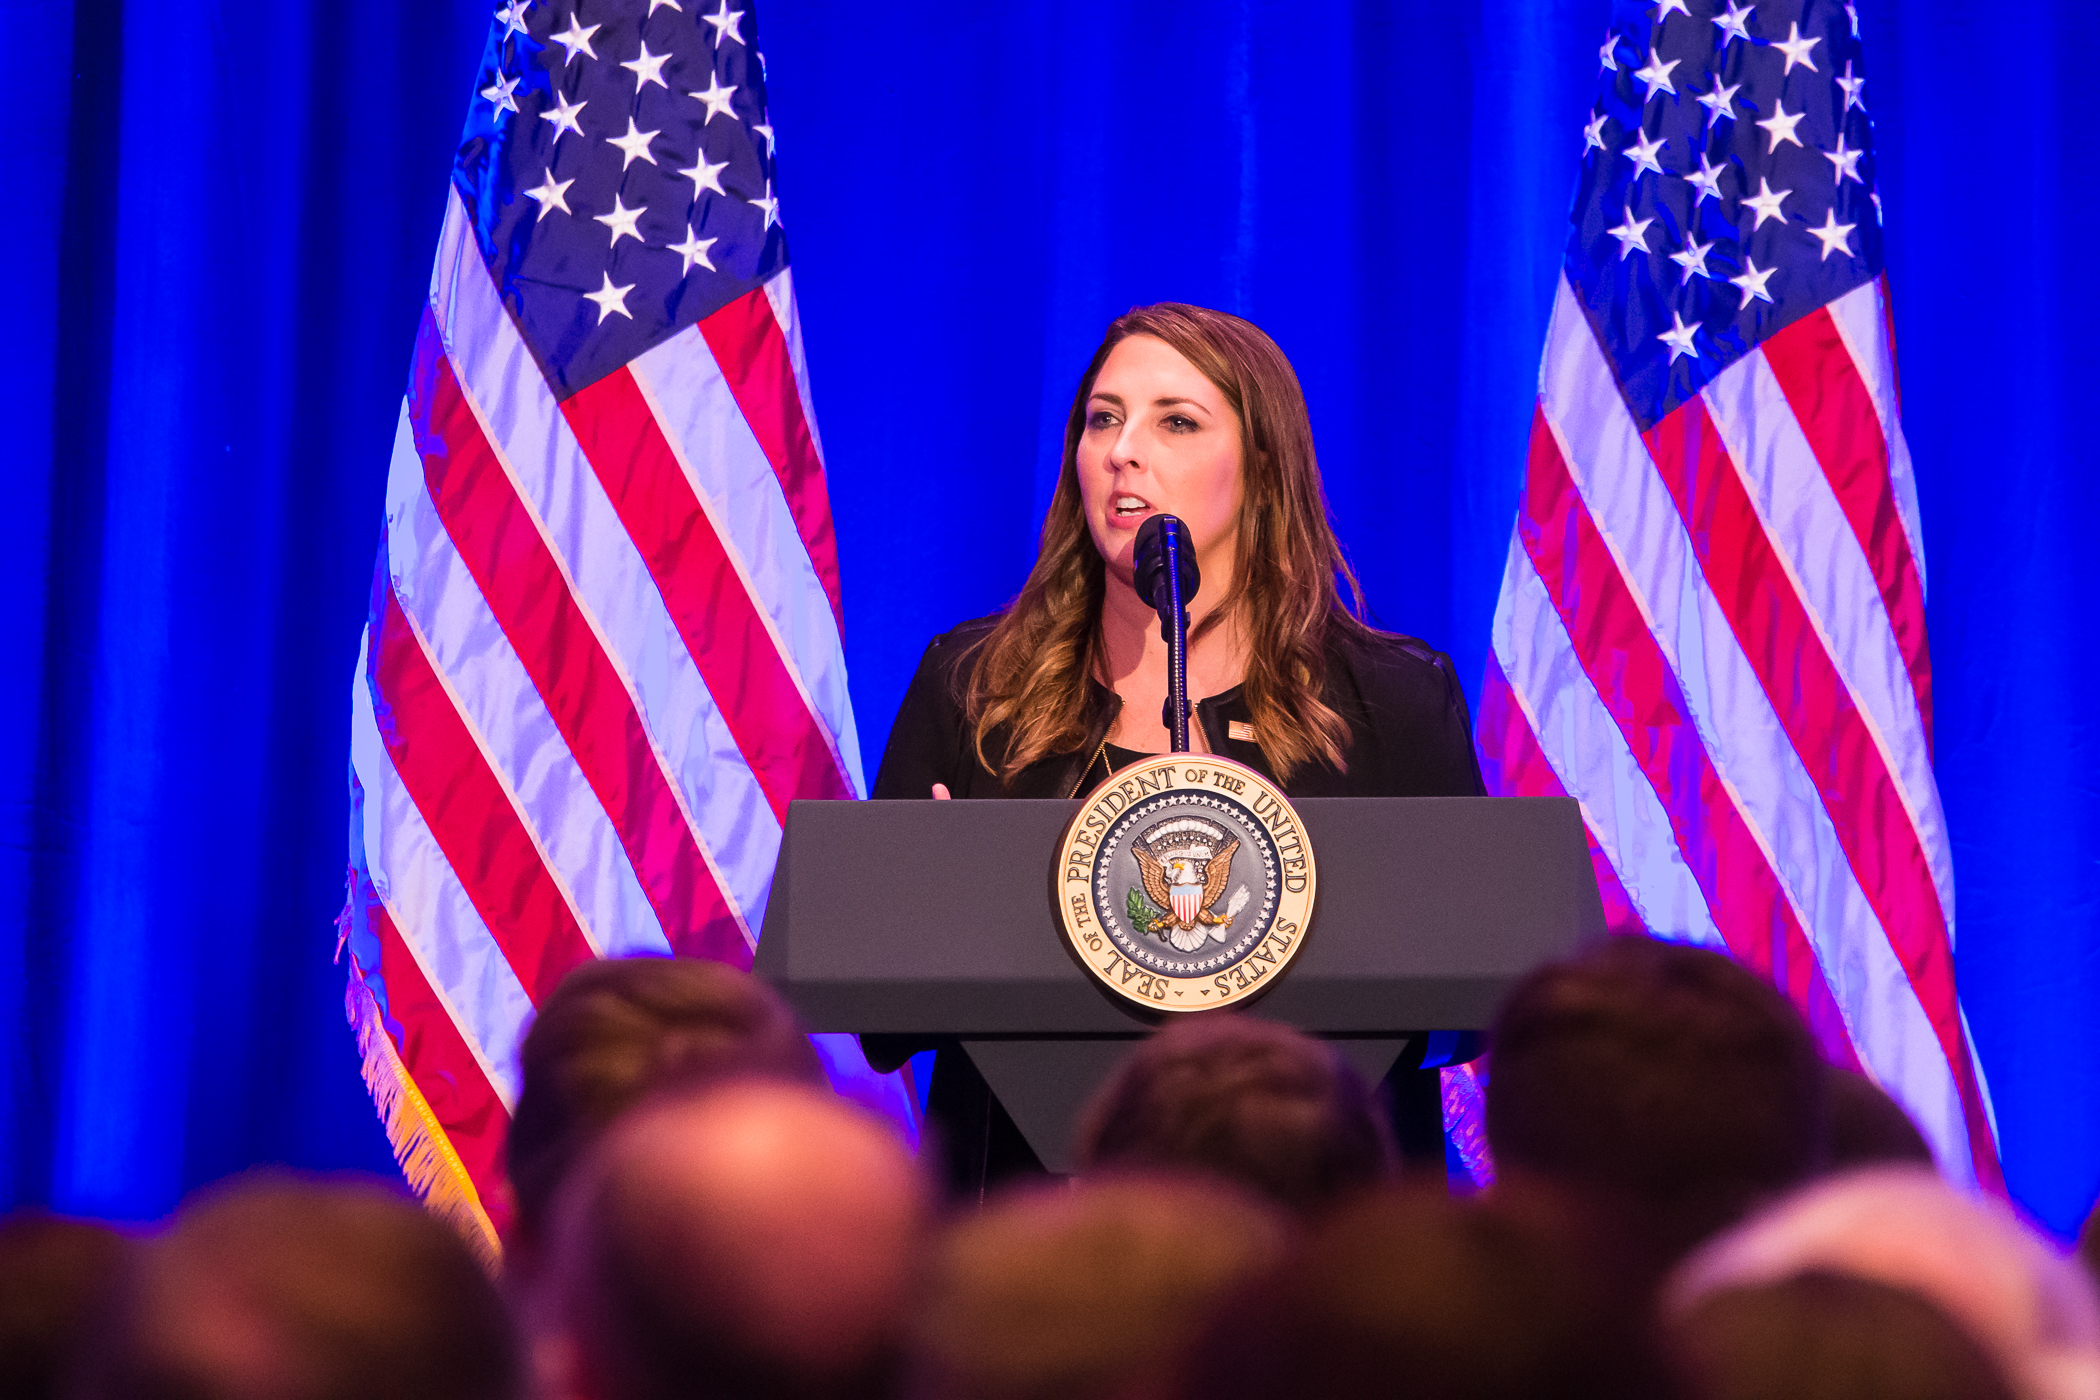 RNC Chairwoman Ronna McDaniel speaks at the Trump Victory event in 2017.